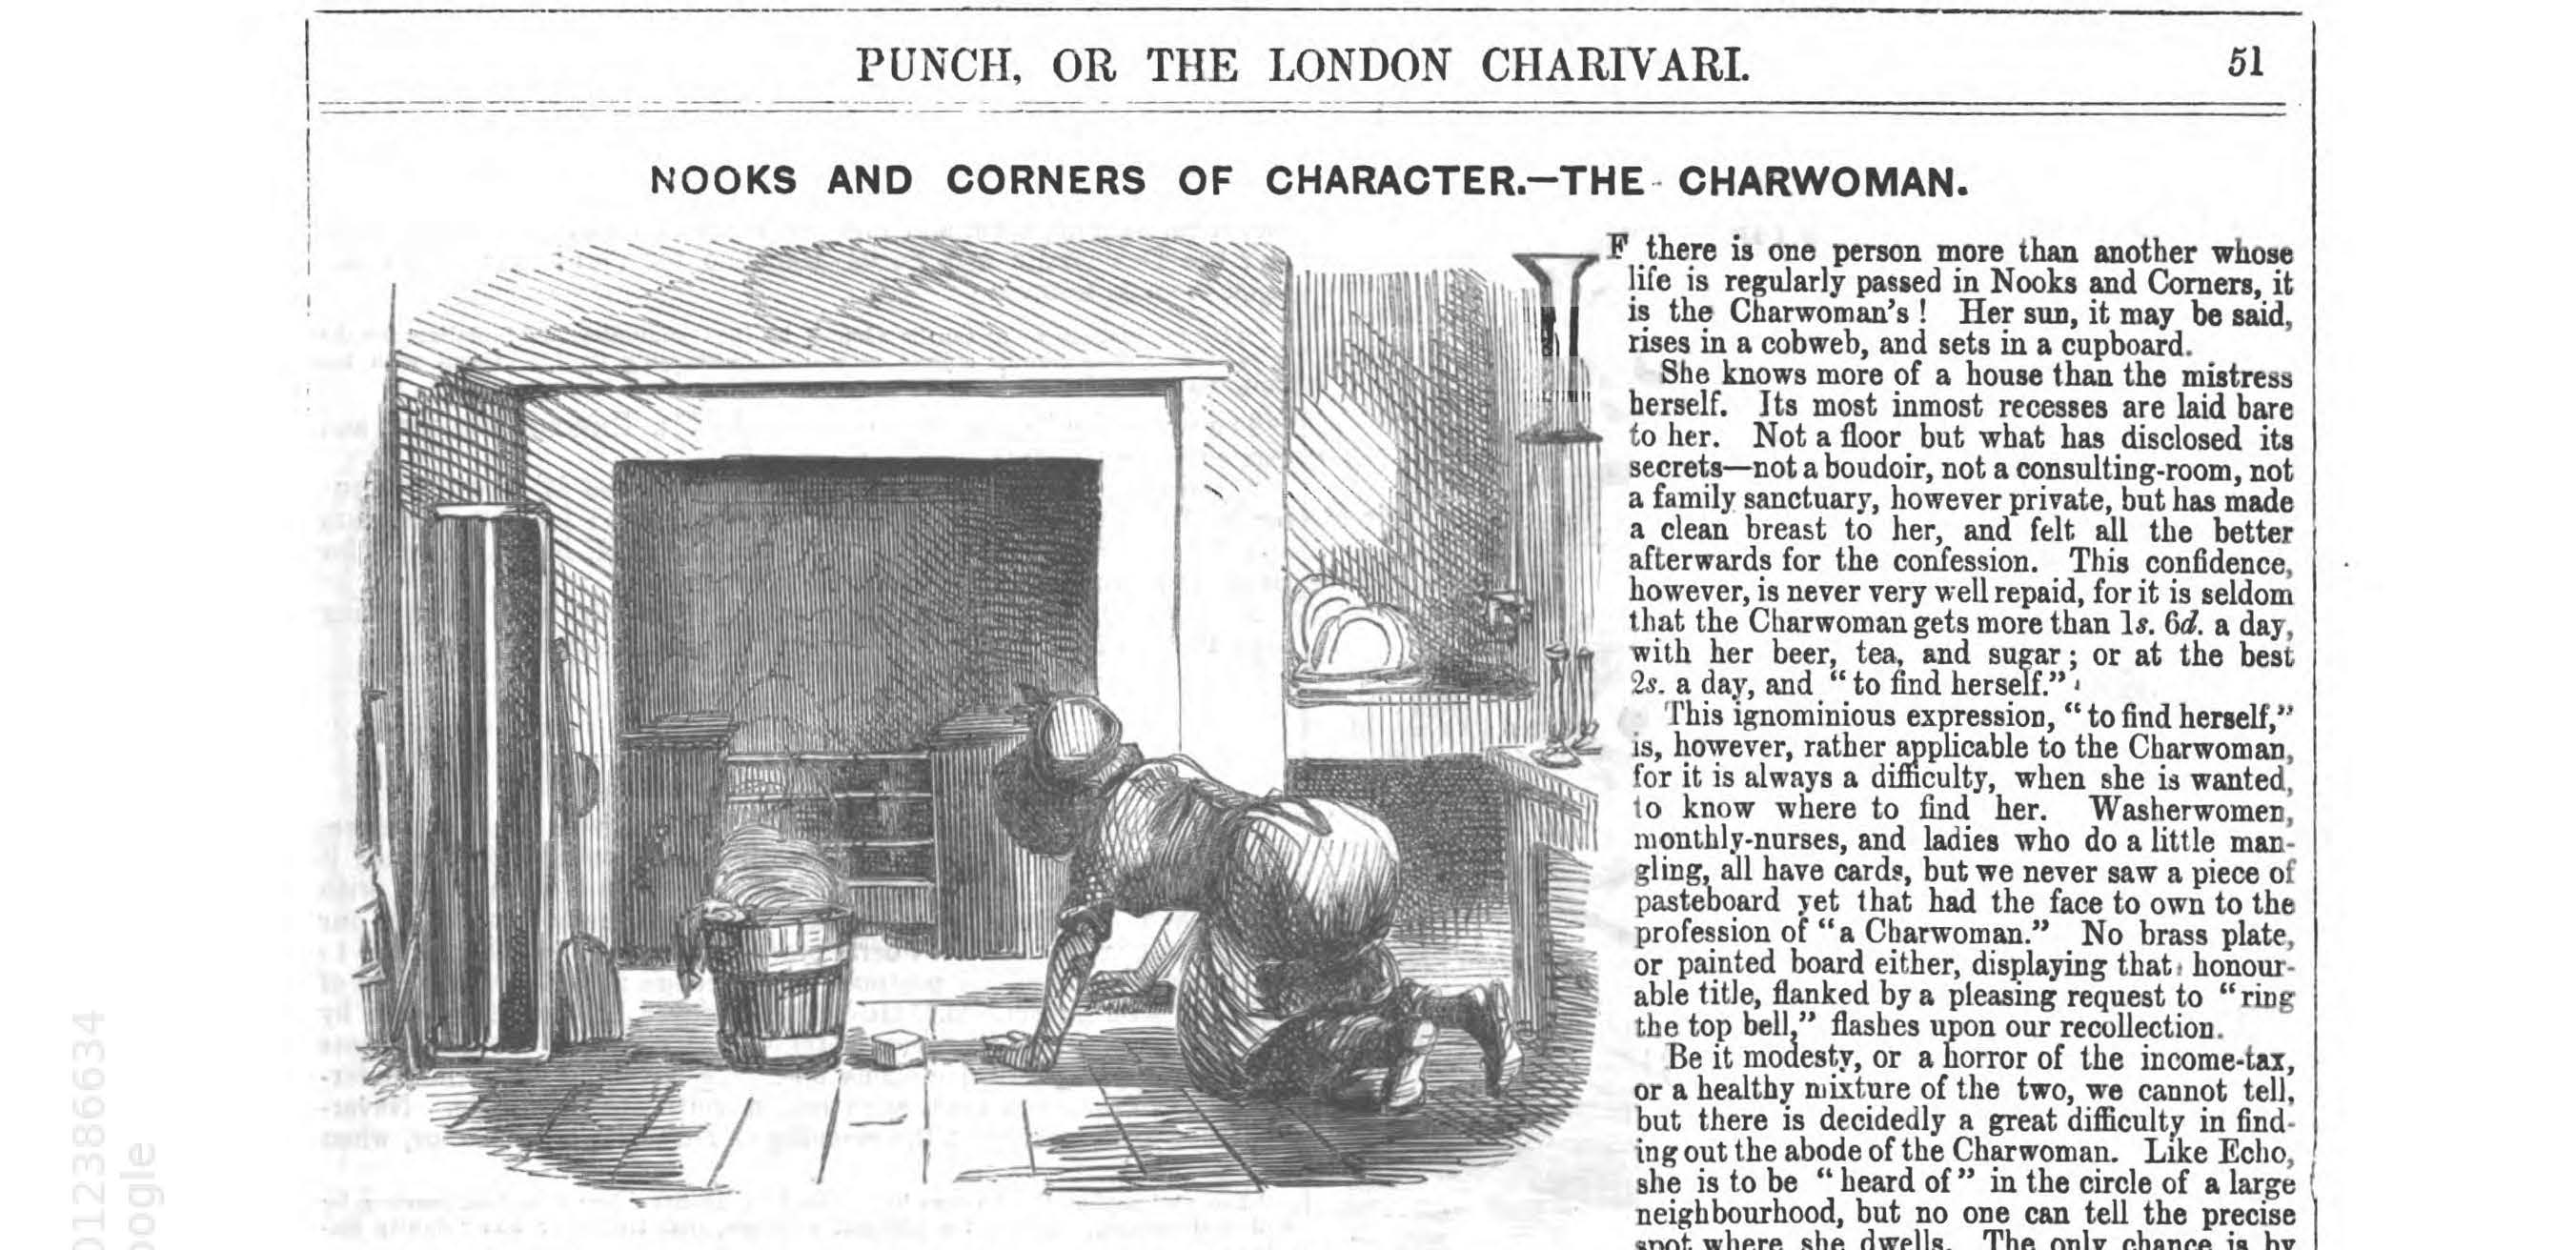 Line drawing of a charwoman on her hands and knees scrubbing the are in front of a fireplace.